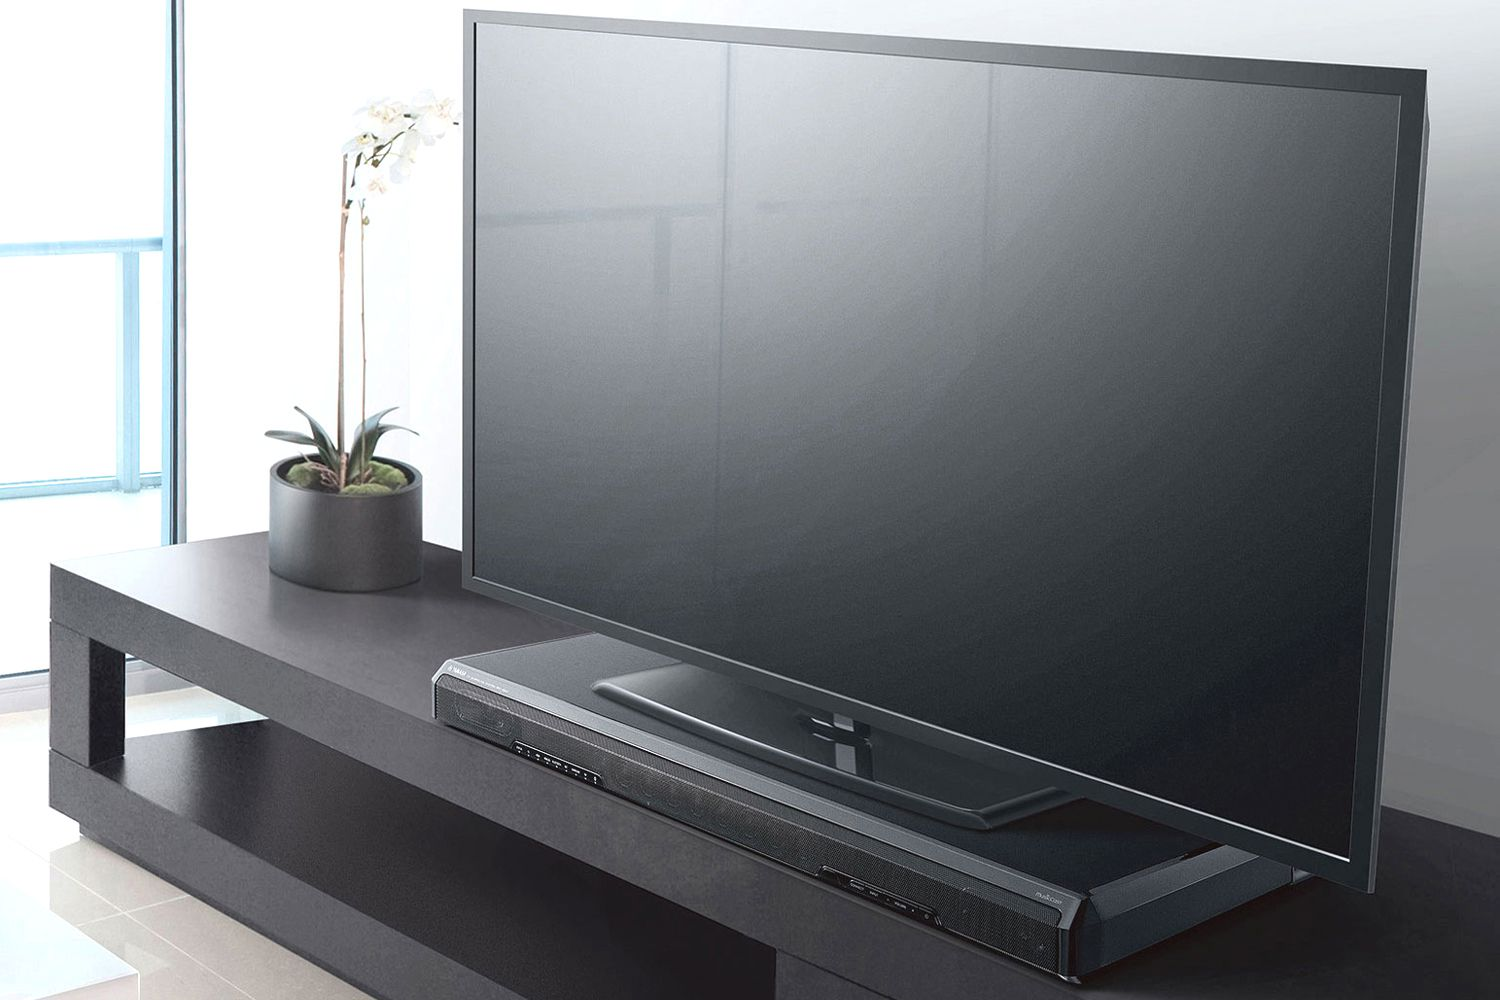 How To Connect Set Up And Use A Sound Bar